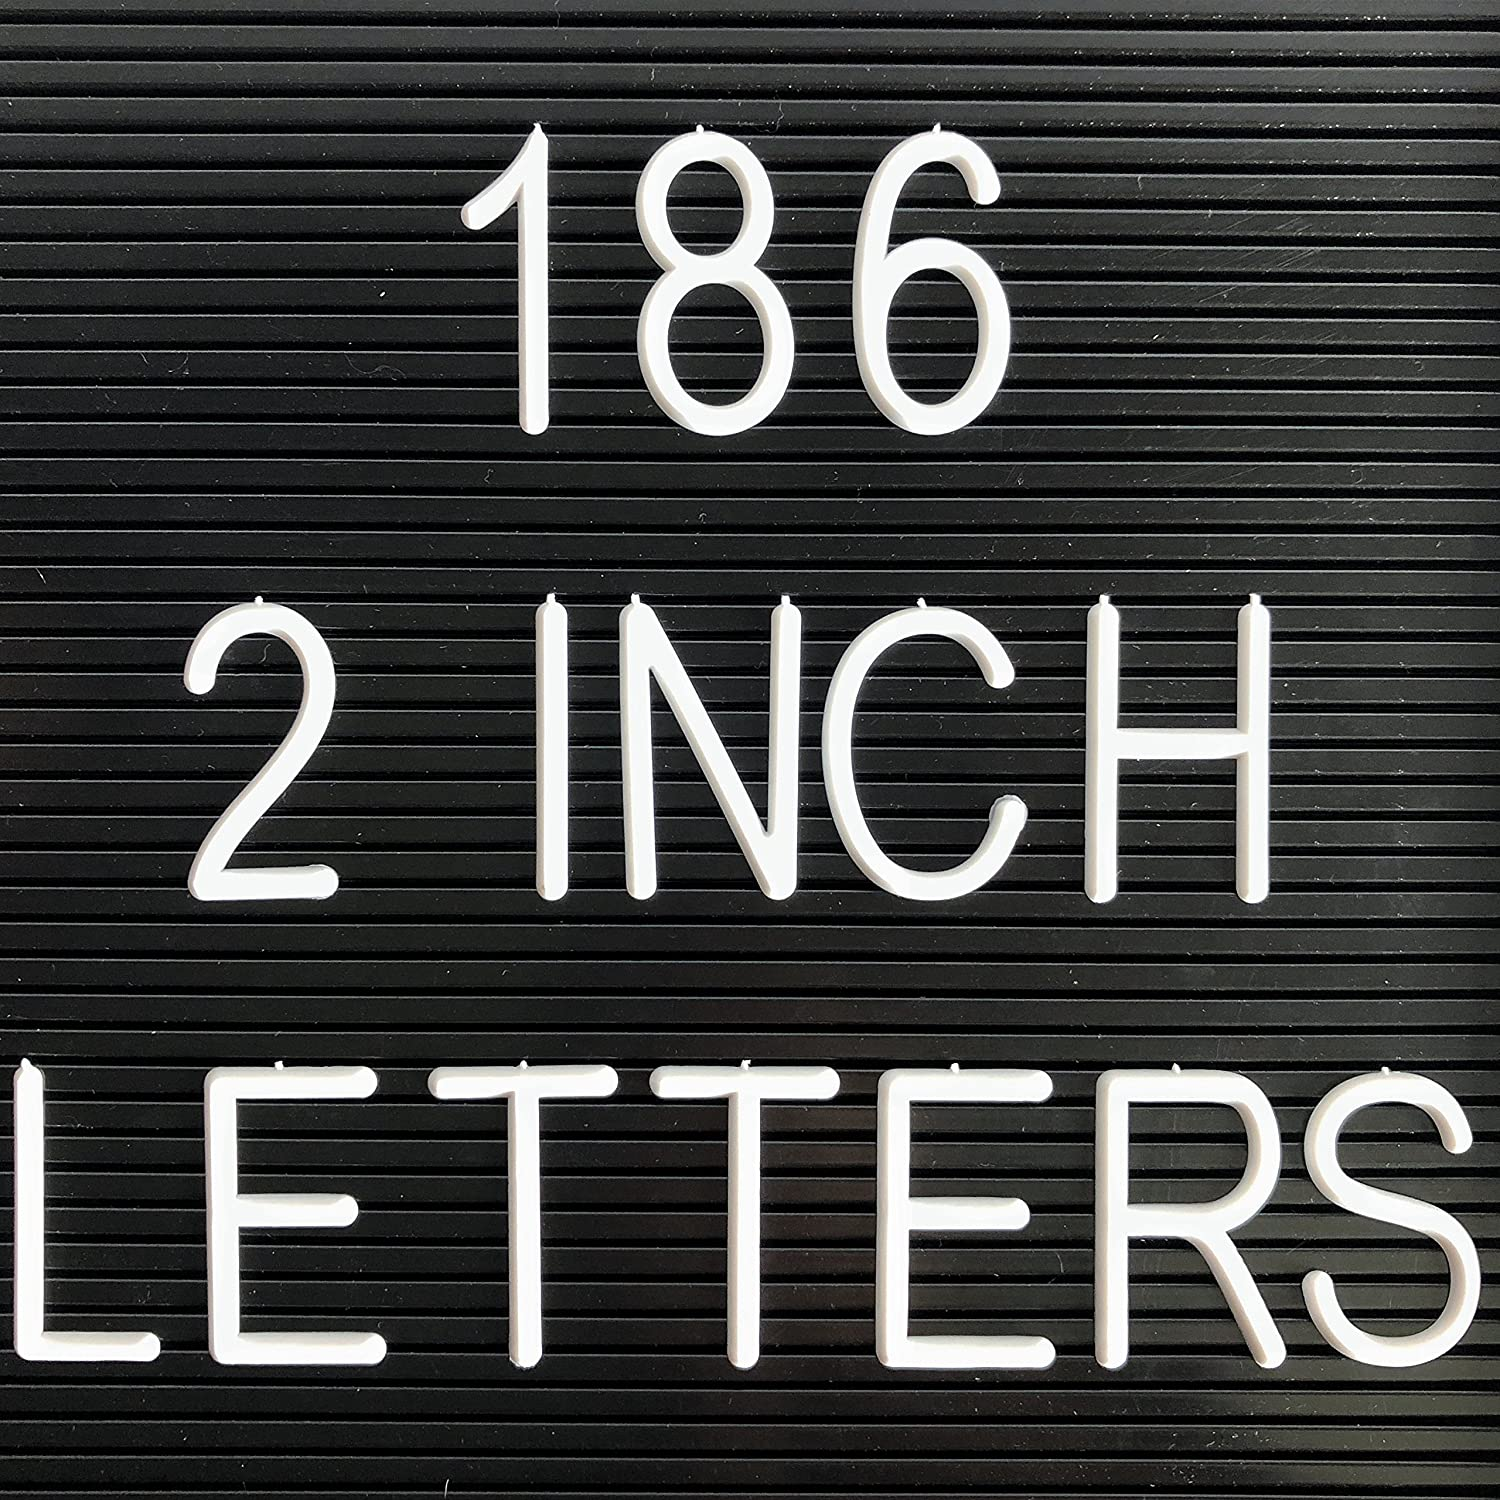 Extra Number or Letter for Sign